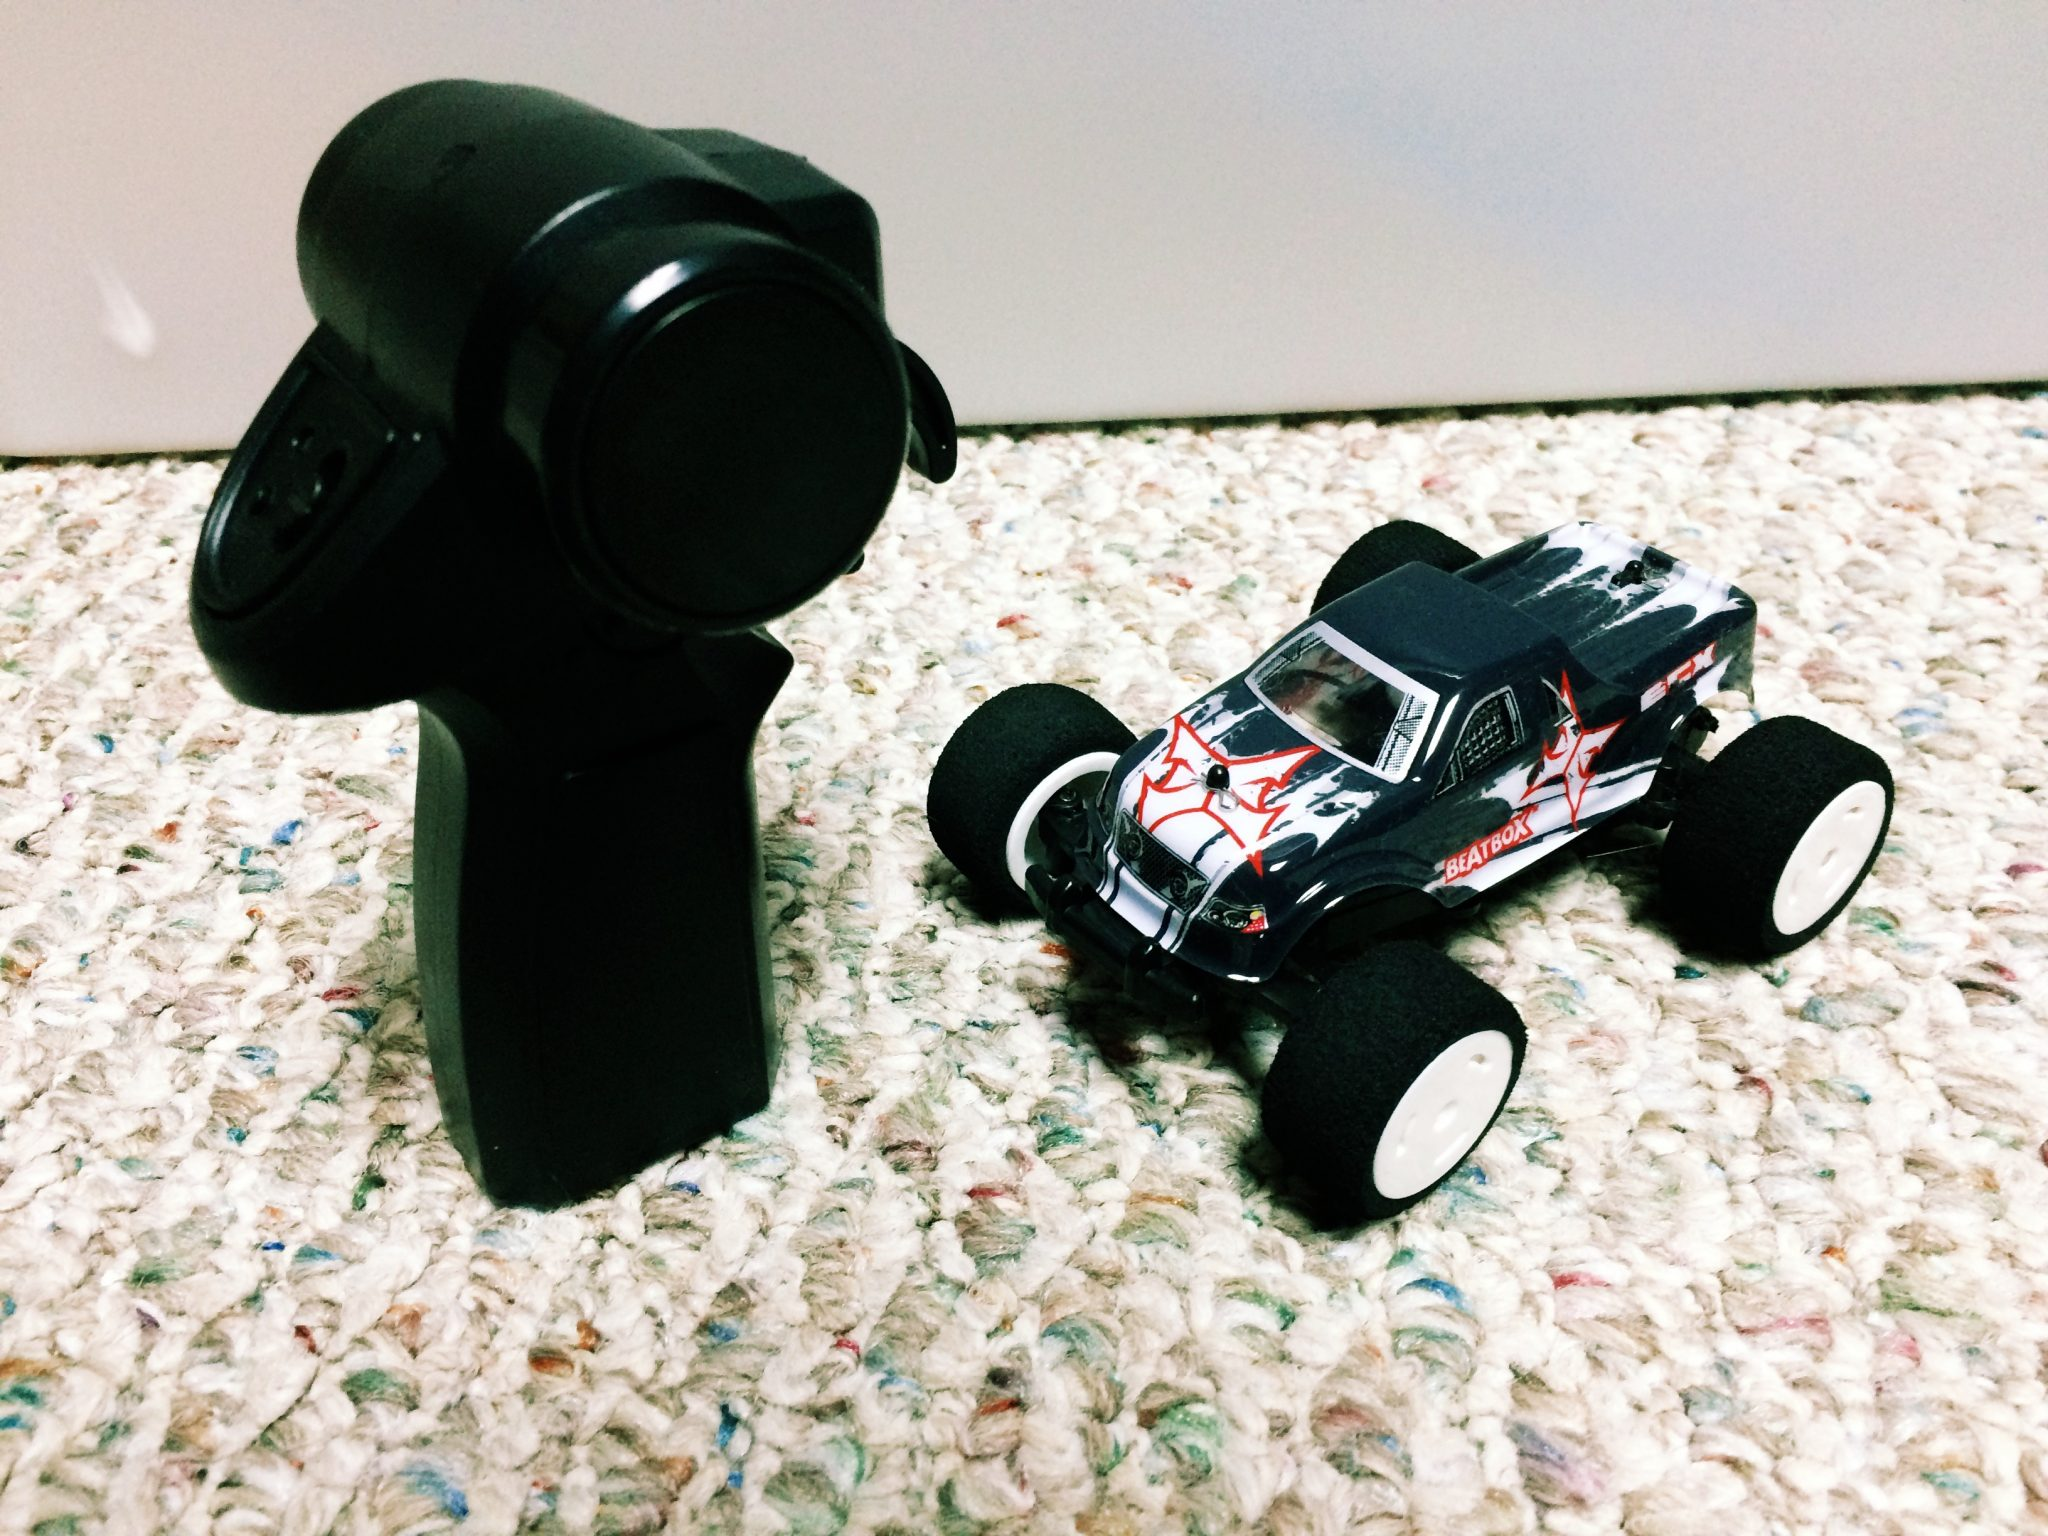 A little bit rock and roll: Reviewing the ECX BeatBox 1/36 Monster Truck